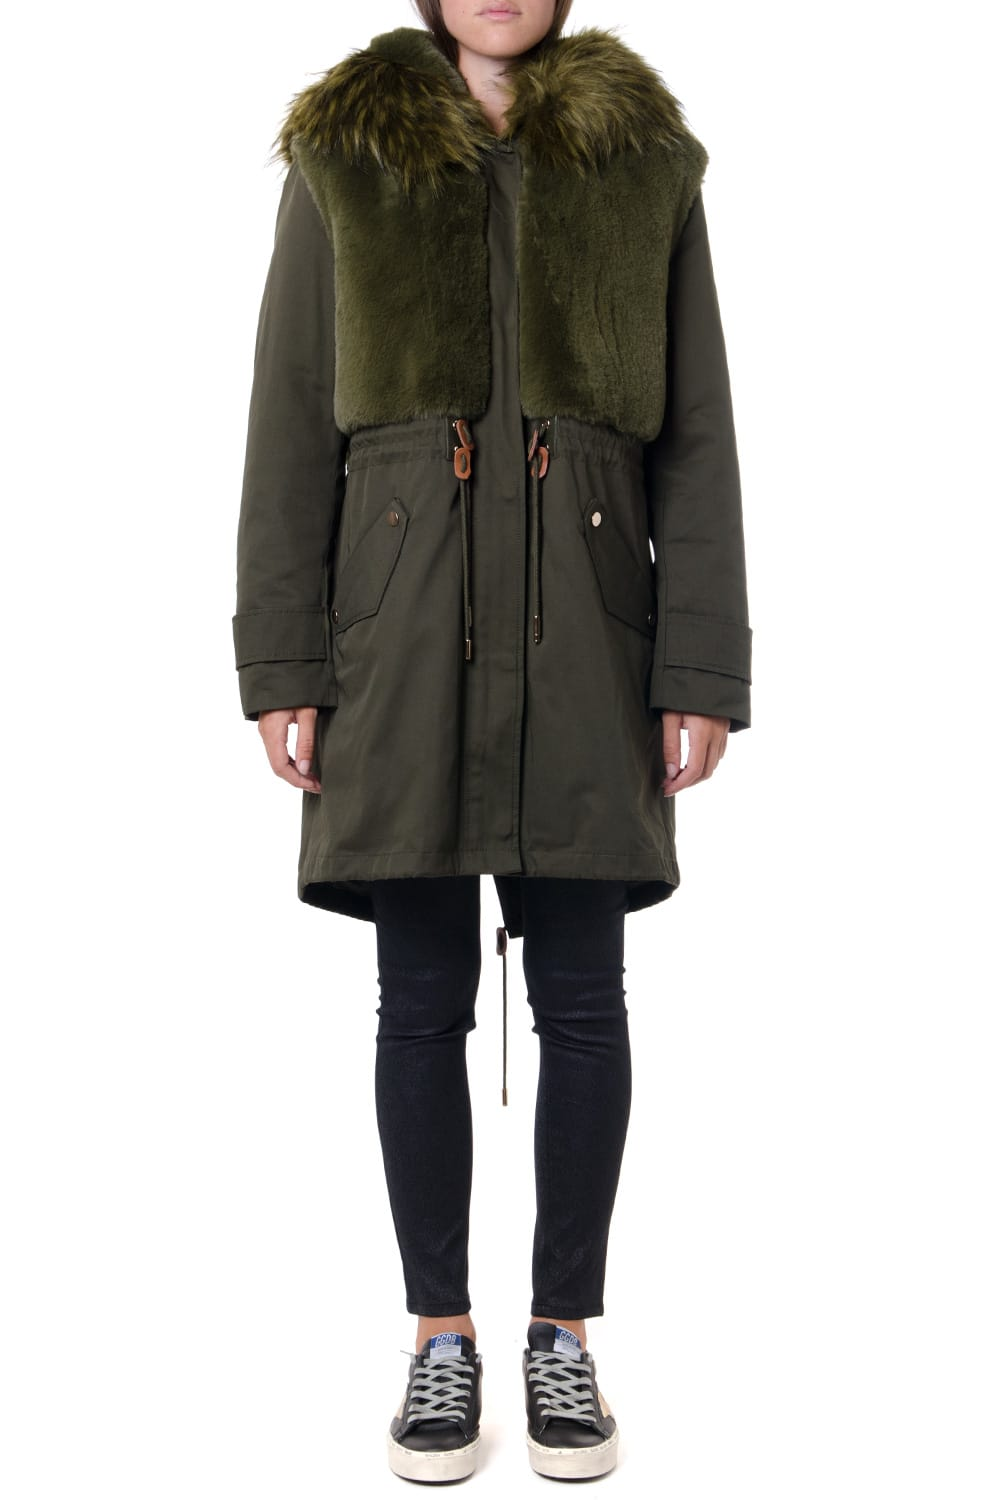 Dondup Faux Fur Insert Technical Fabric Parka Jacket